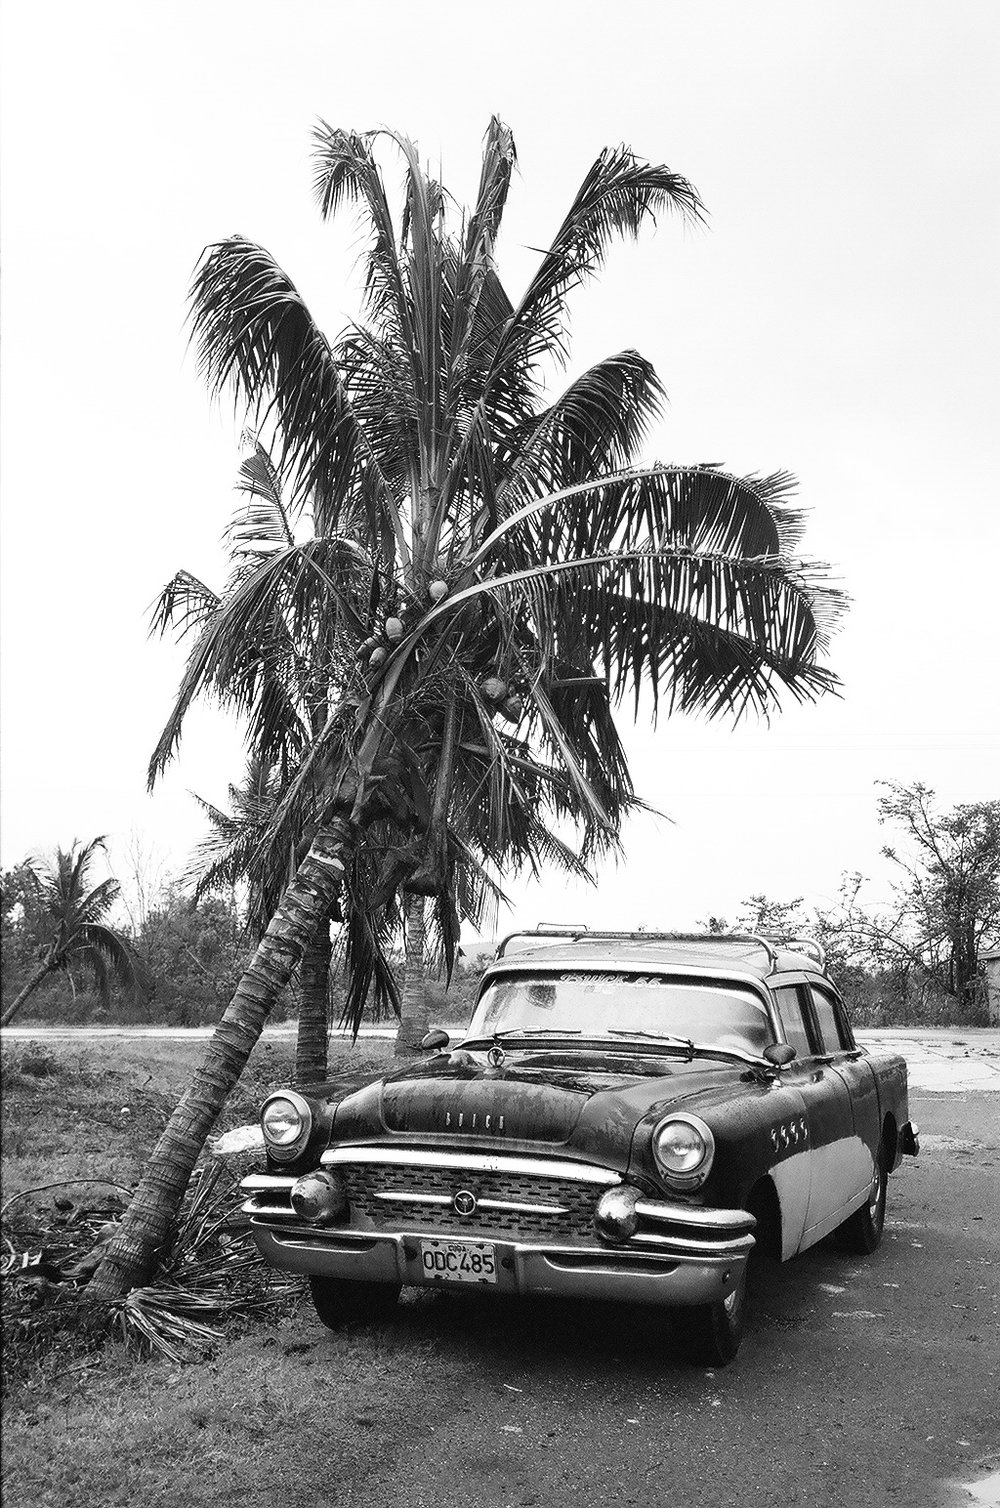 Old Cuban car by palm tree